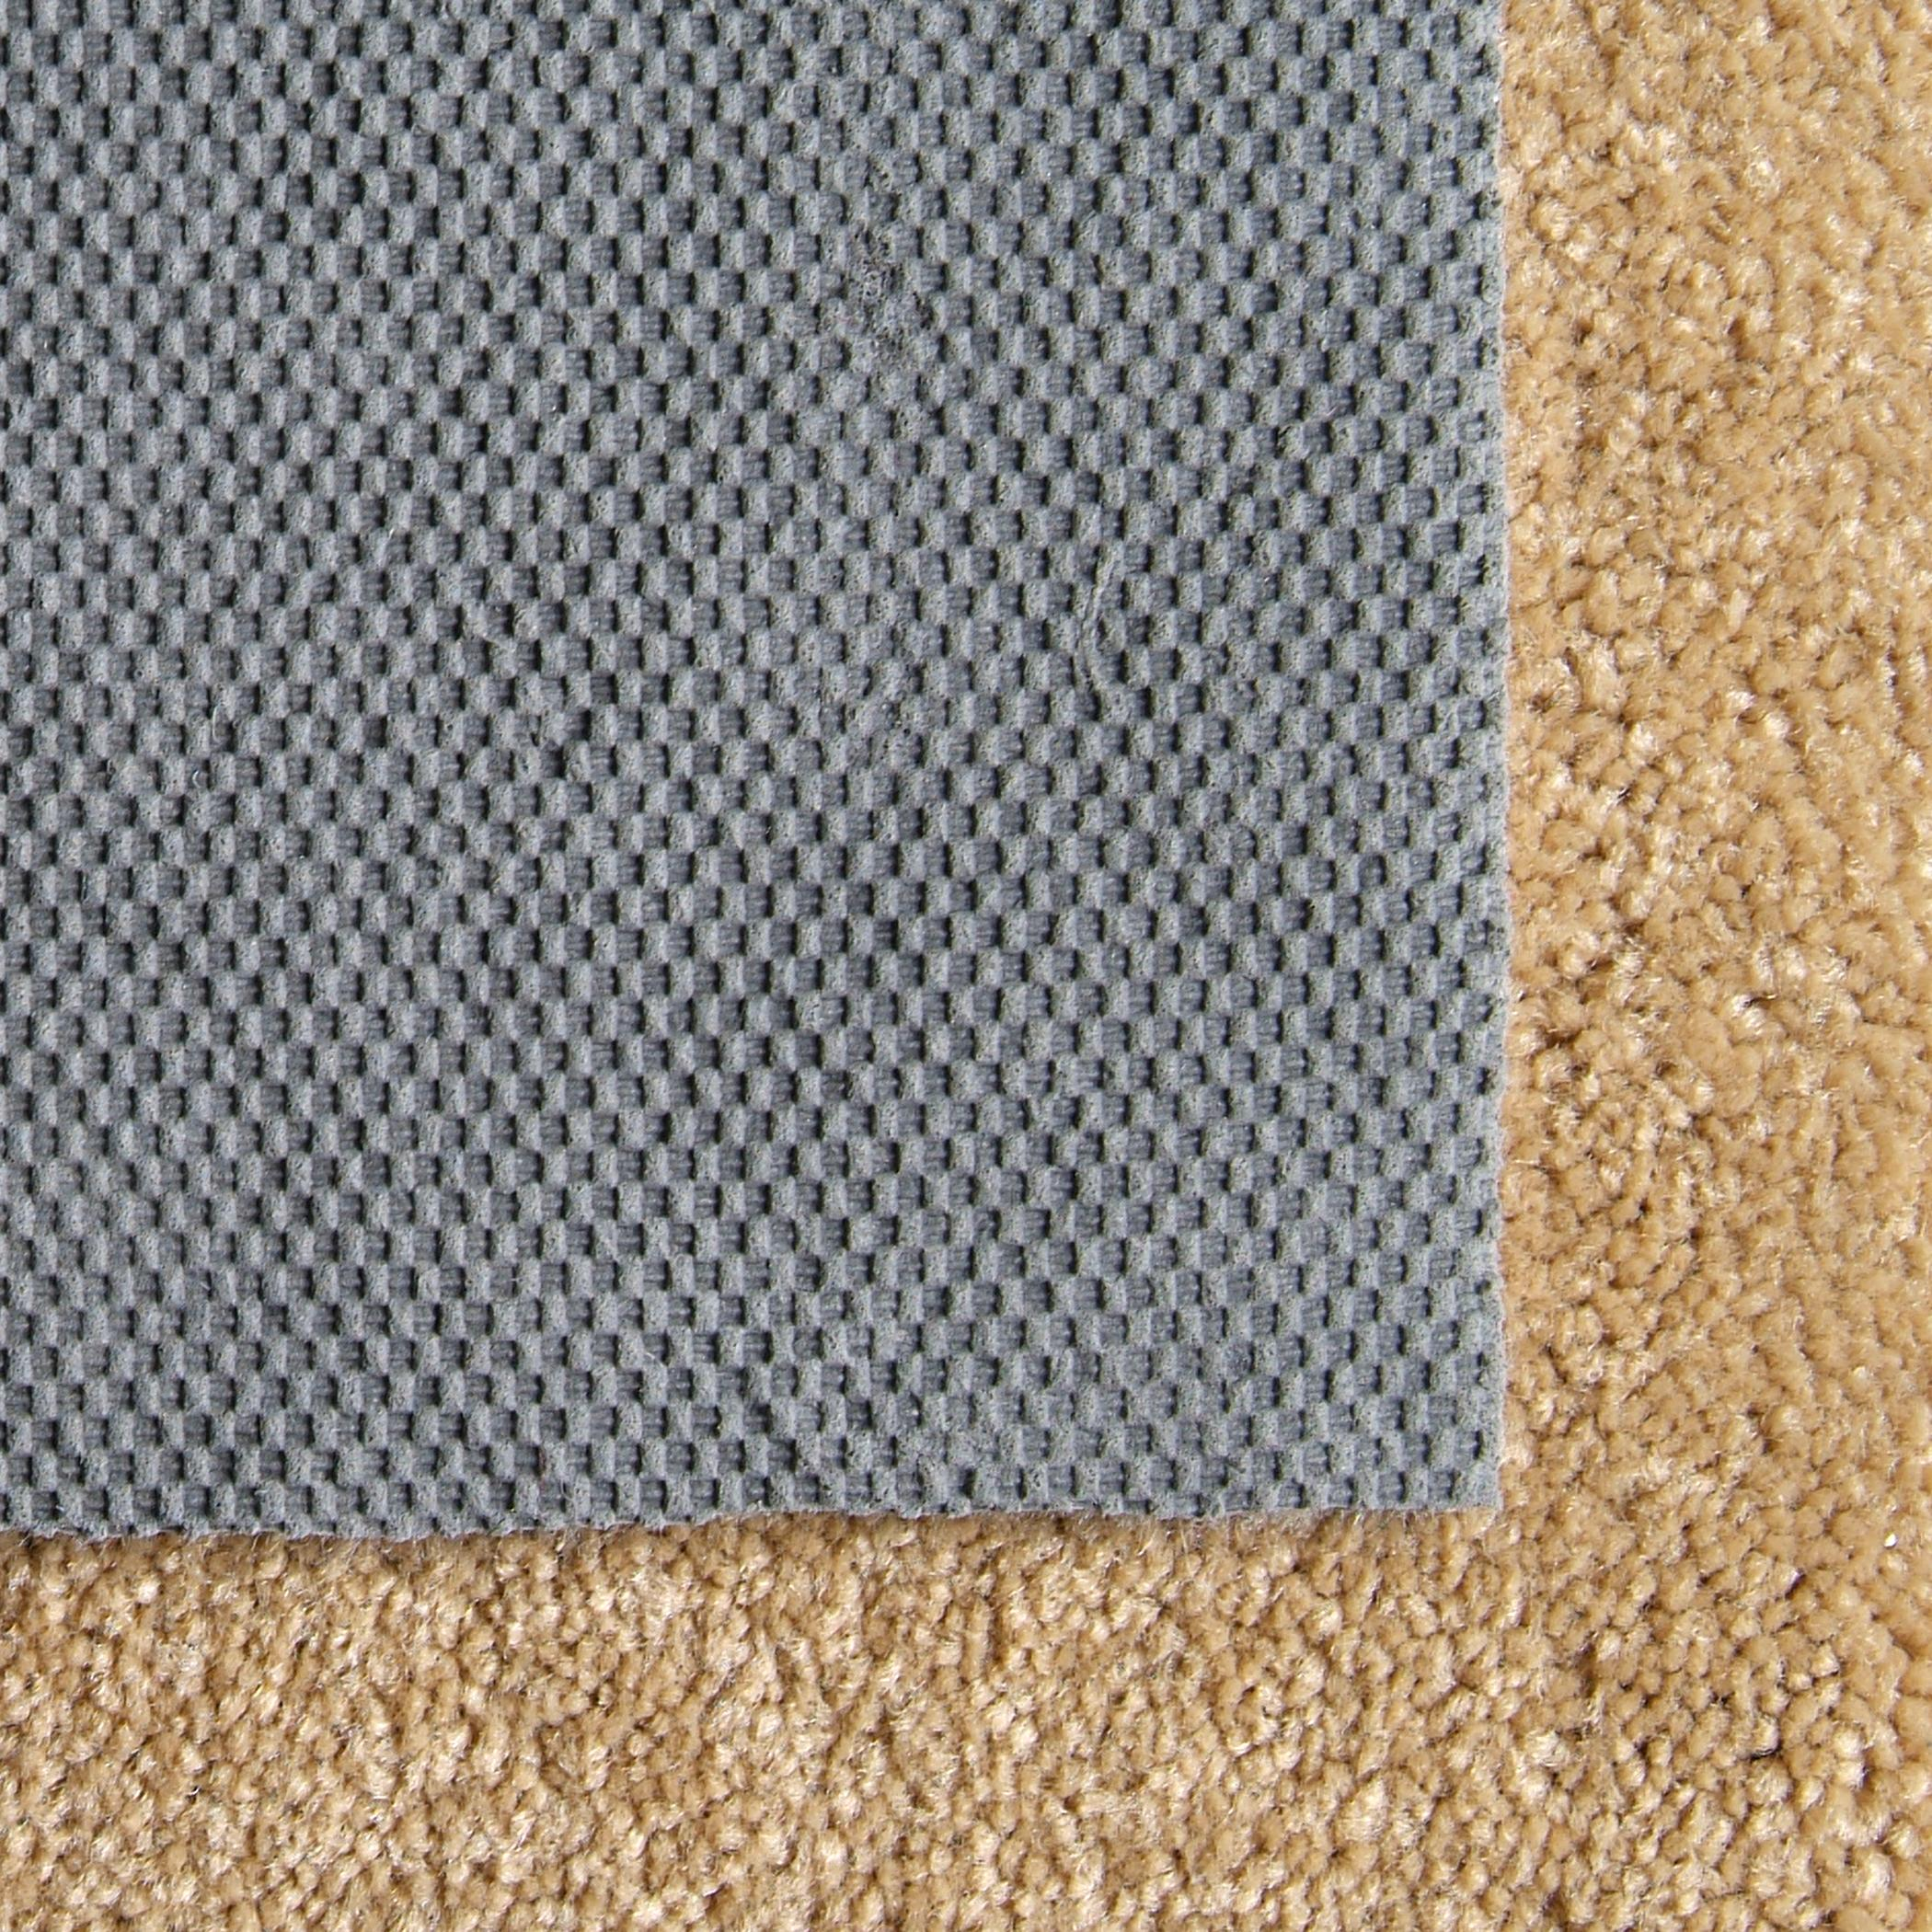 design felt coupon non rugs usa on rug depot round mohawk for amazon pad ideas lowes x slip frightening designed home pads walmart com area carpet